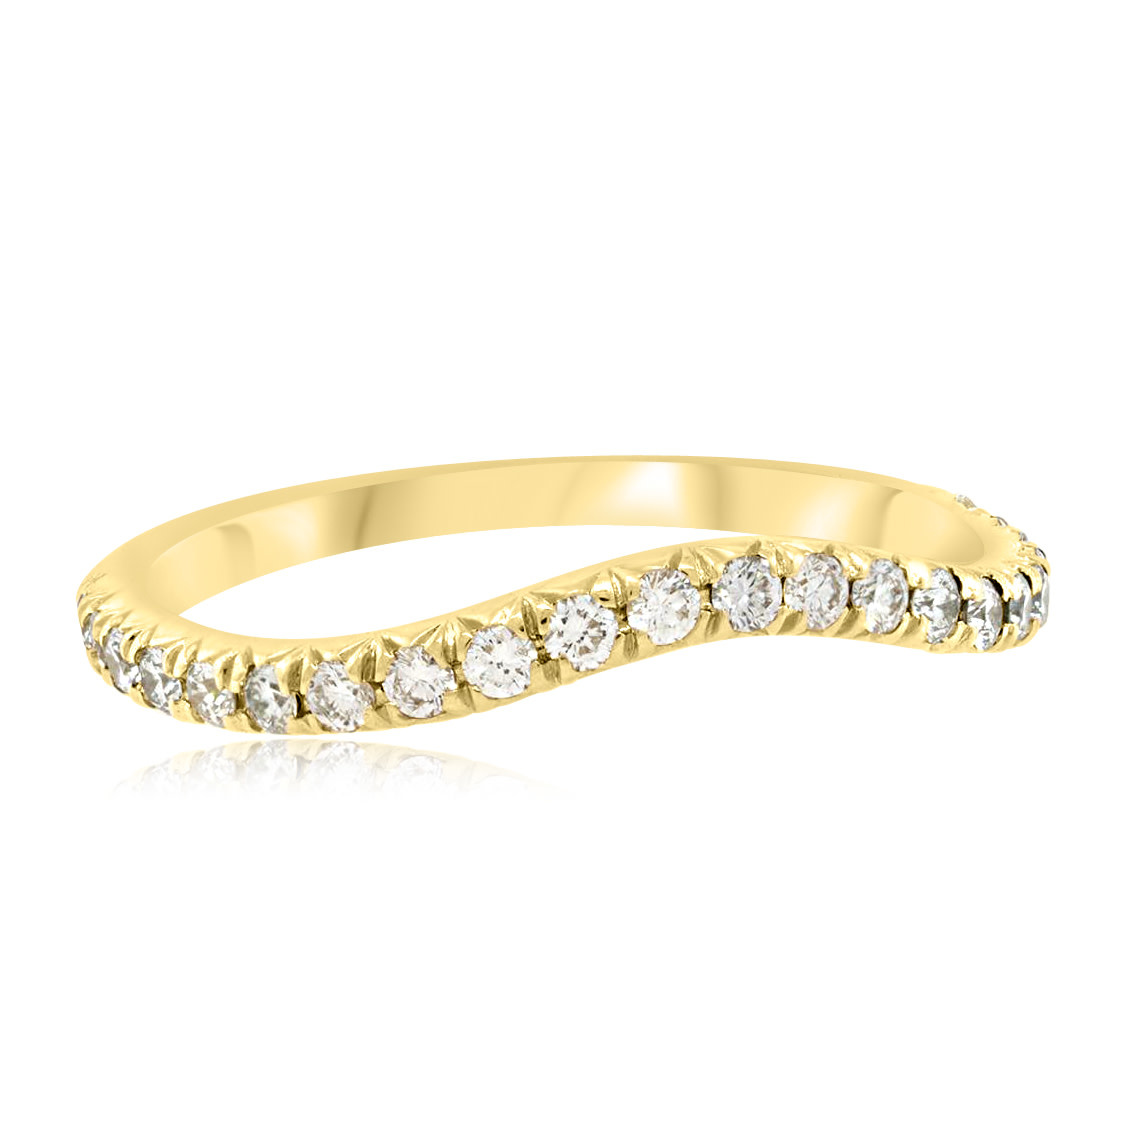 Trabert Goldsmiths Curved Pave Diamond Yellow Gold Band